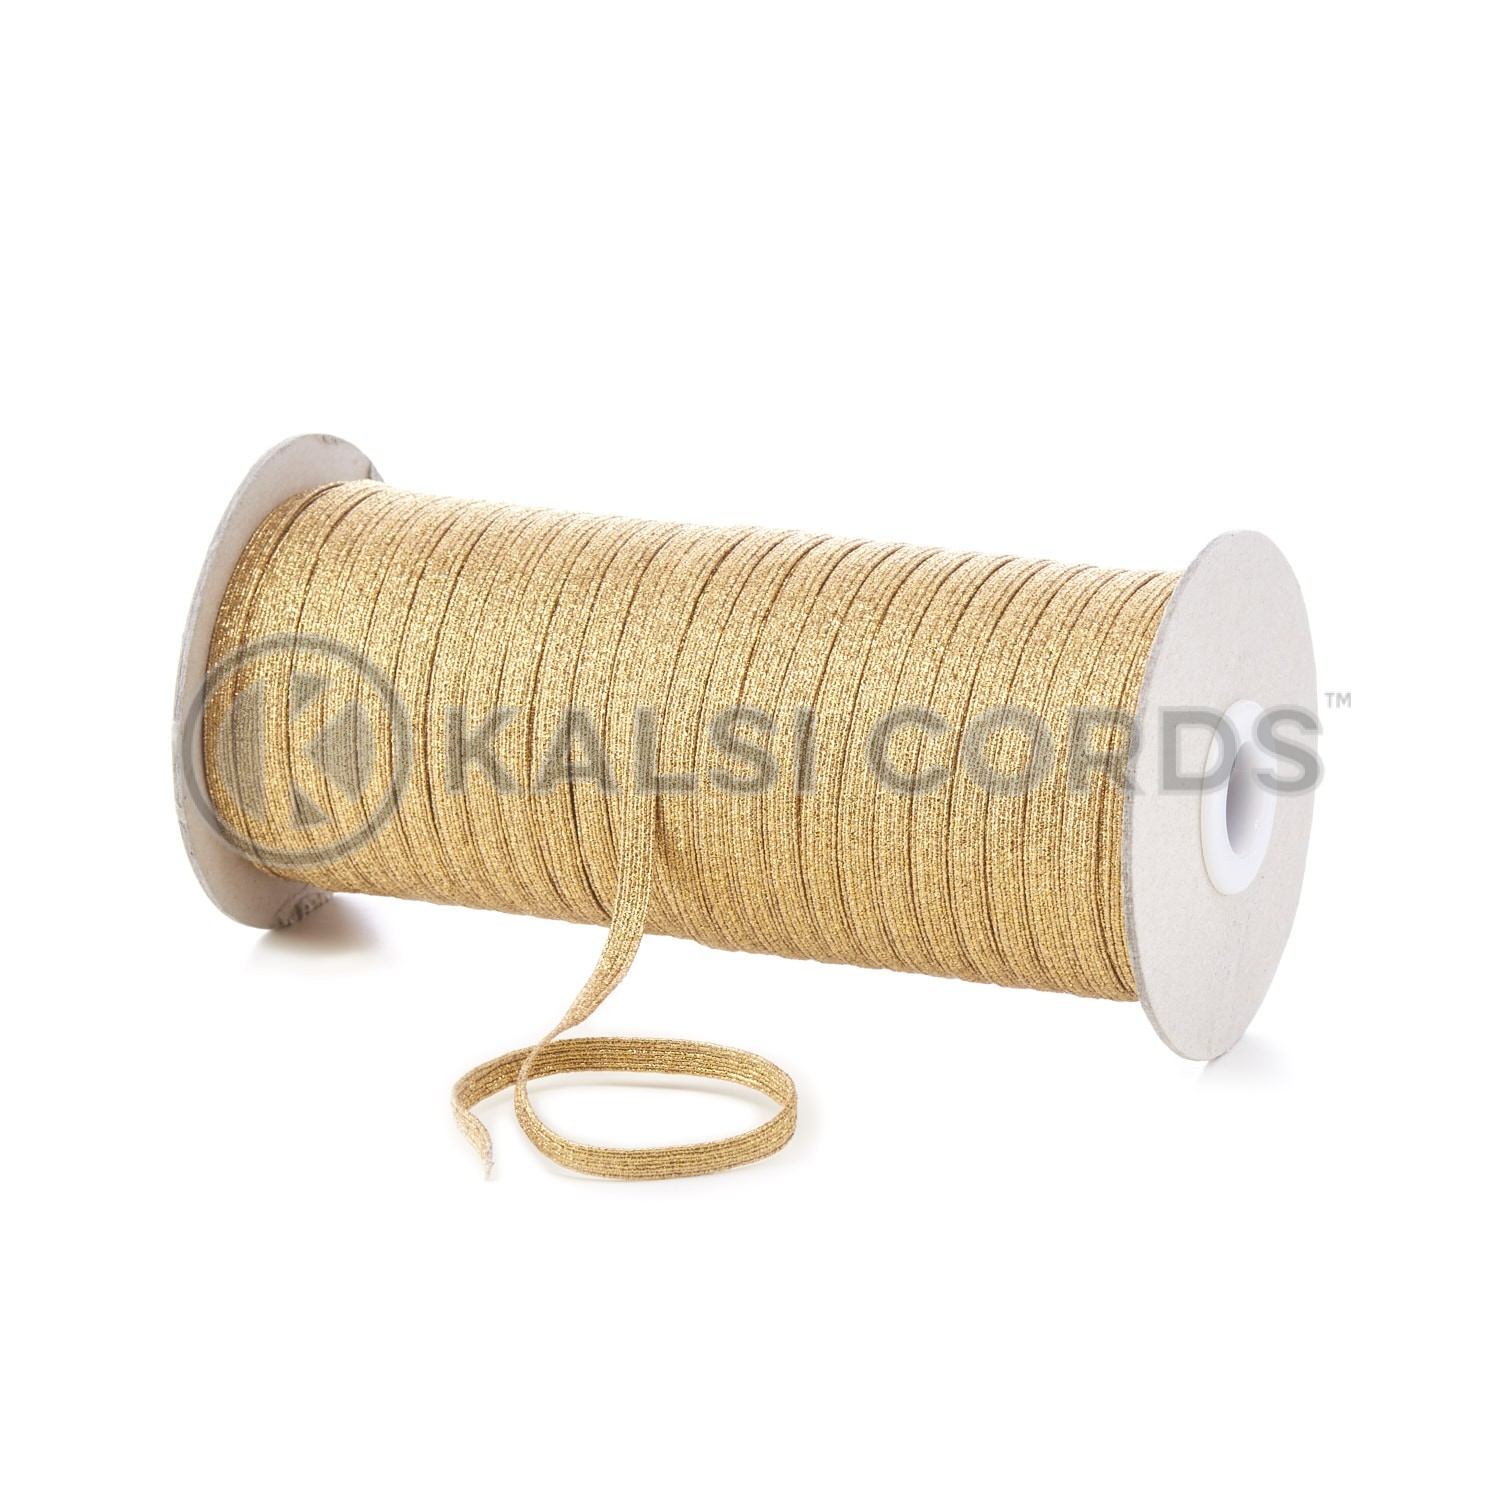 Gold Lurex 6mm 8 Cord Flat Braided Elastic Roll Sewing Tailoring Face Masks Dress Making LX32 Kalsi Cords